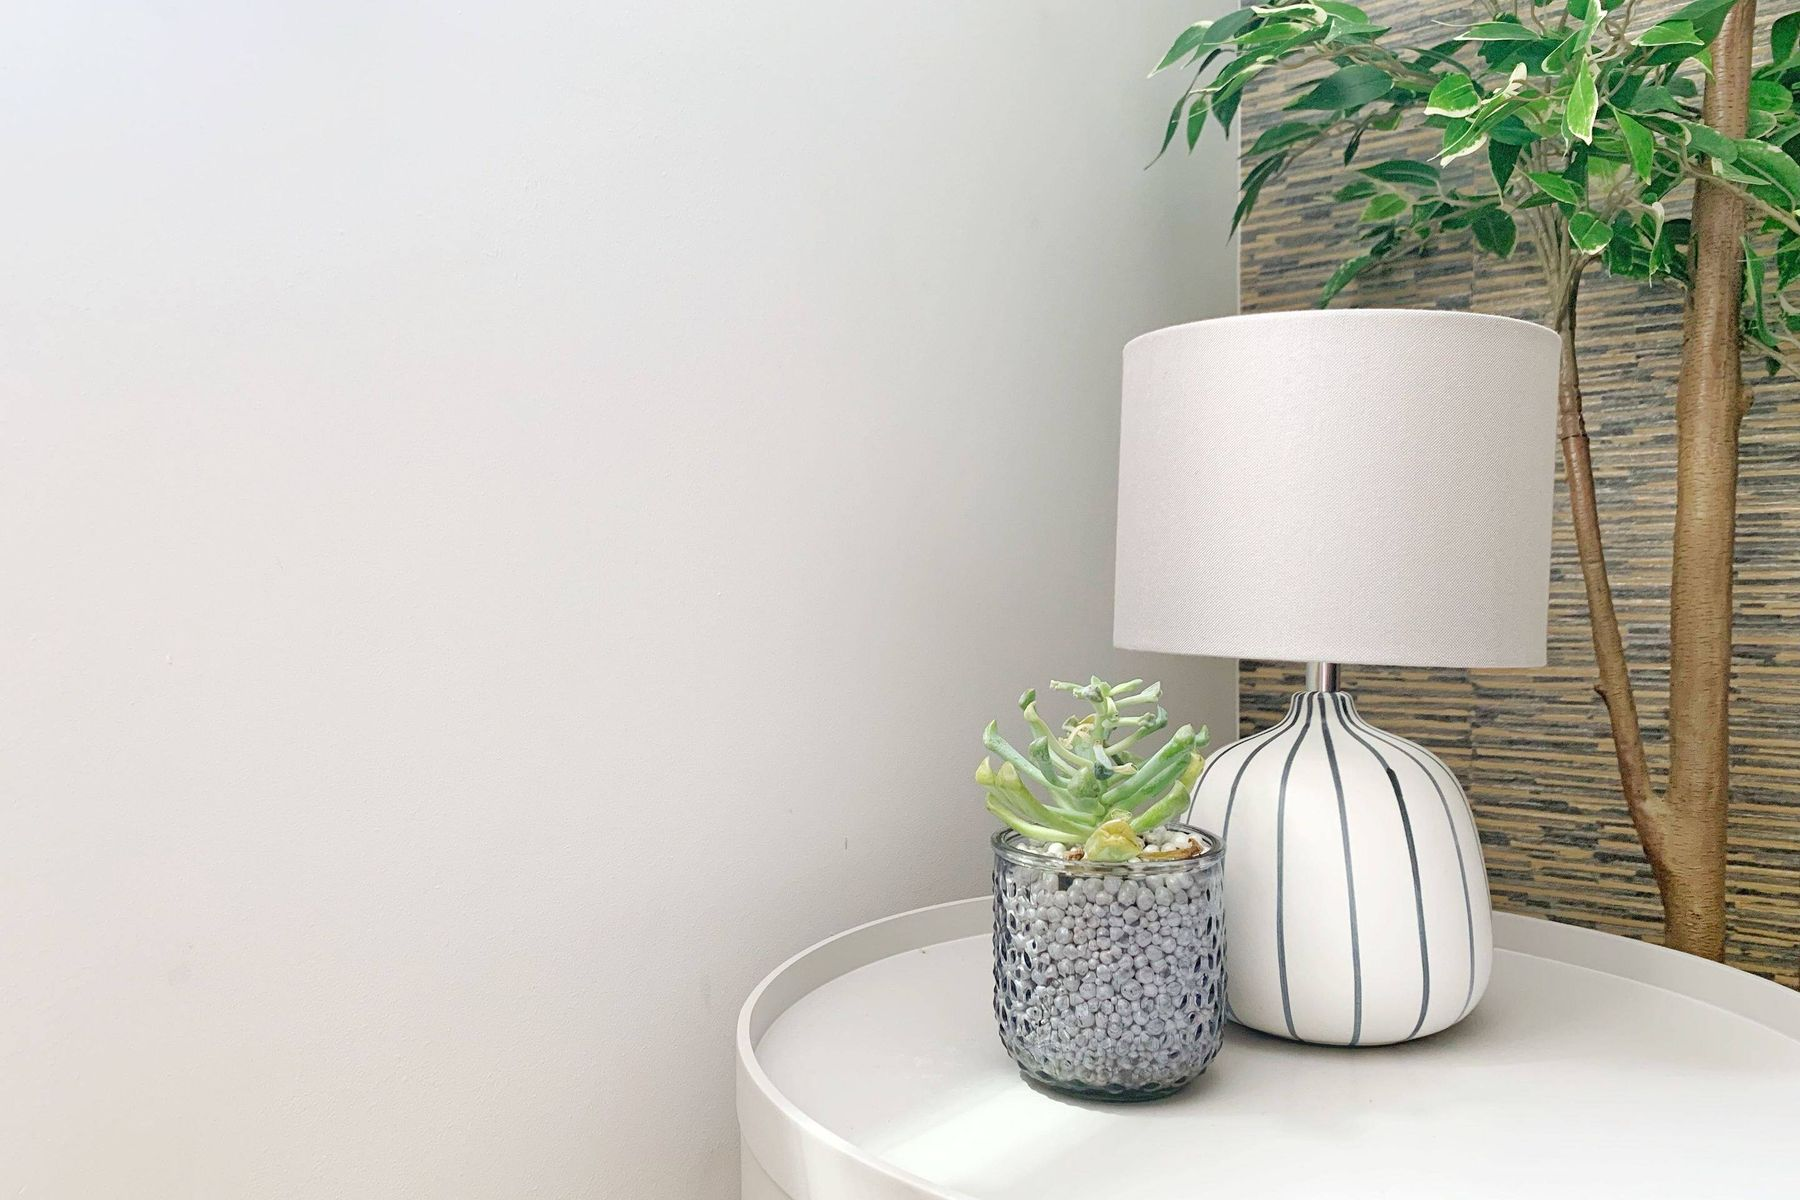 clean white lampshade beside green plants